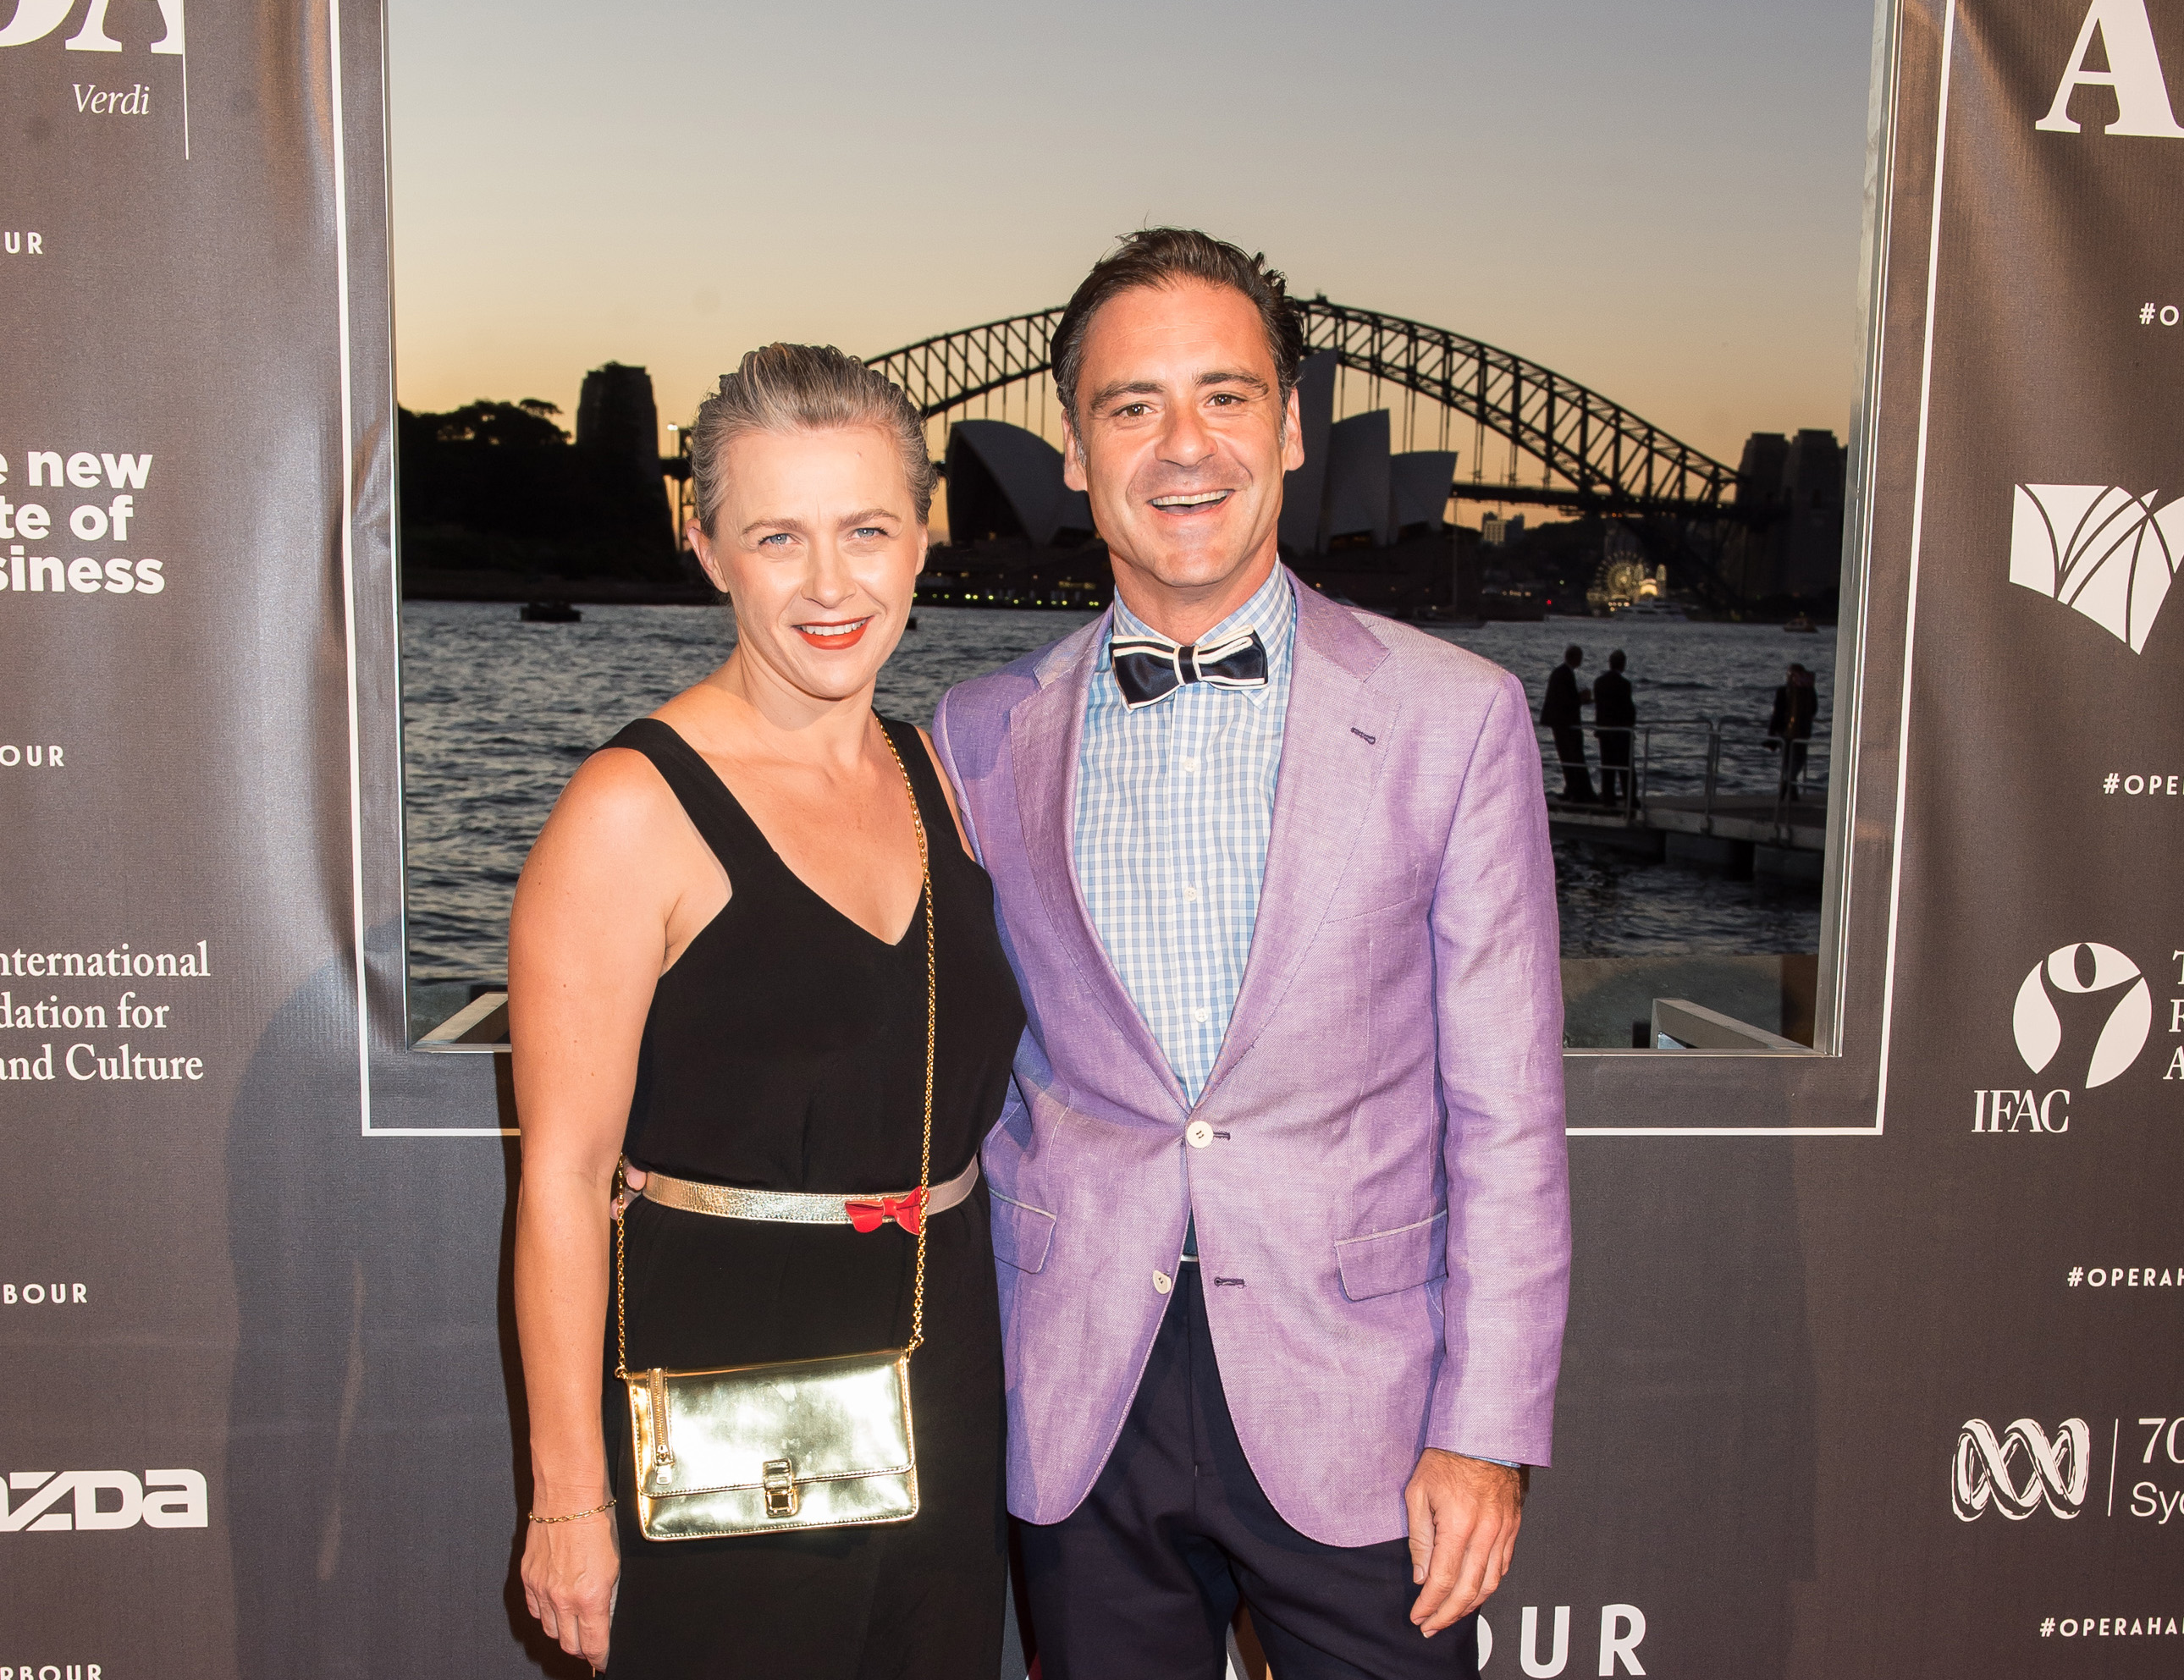 Andrew O'Keefe and his wife Eleanor